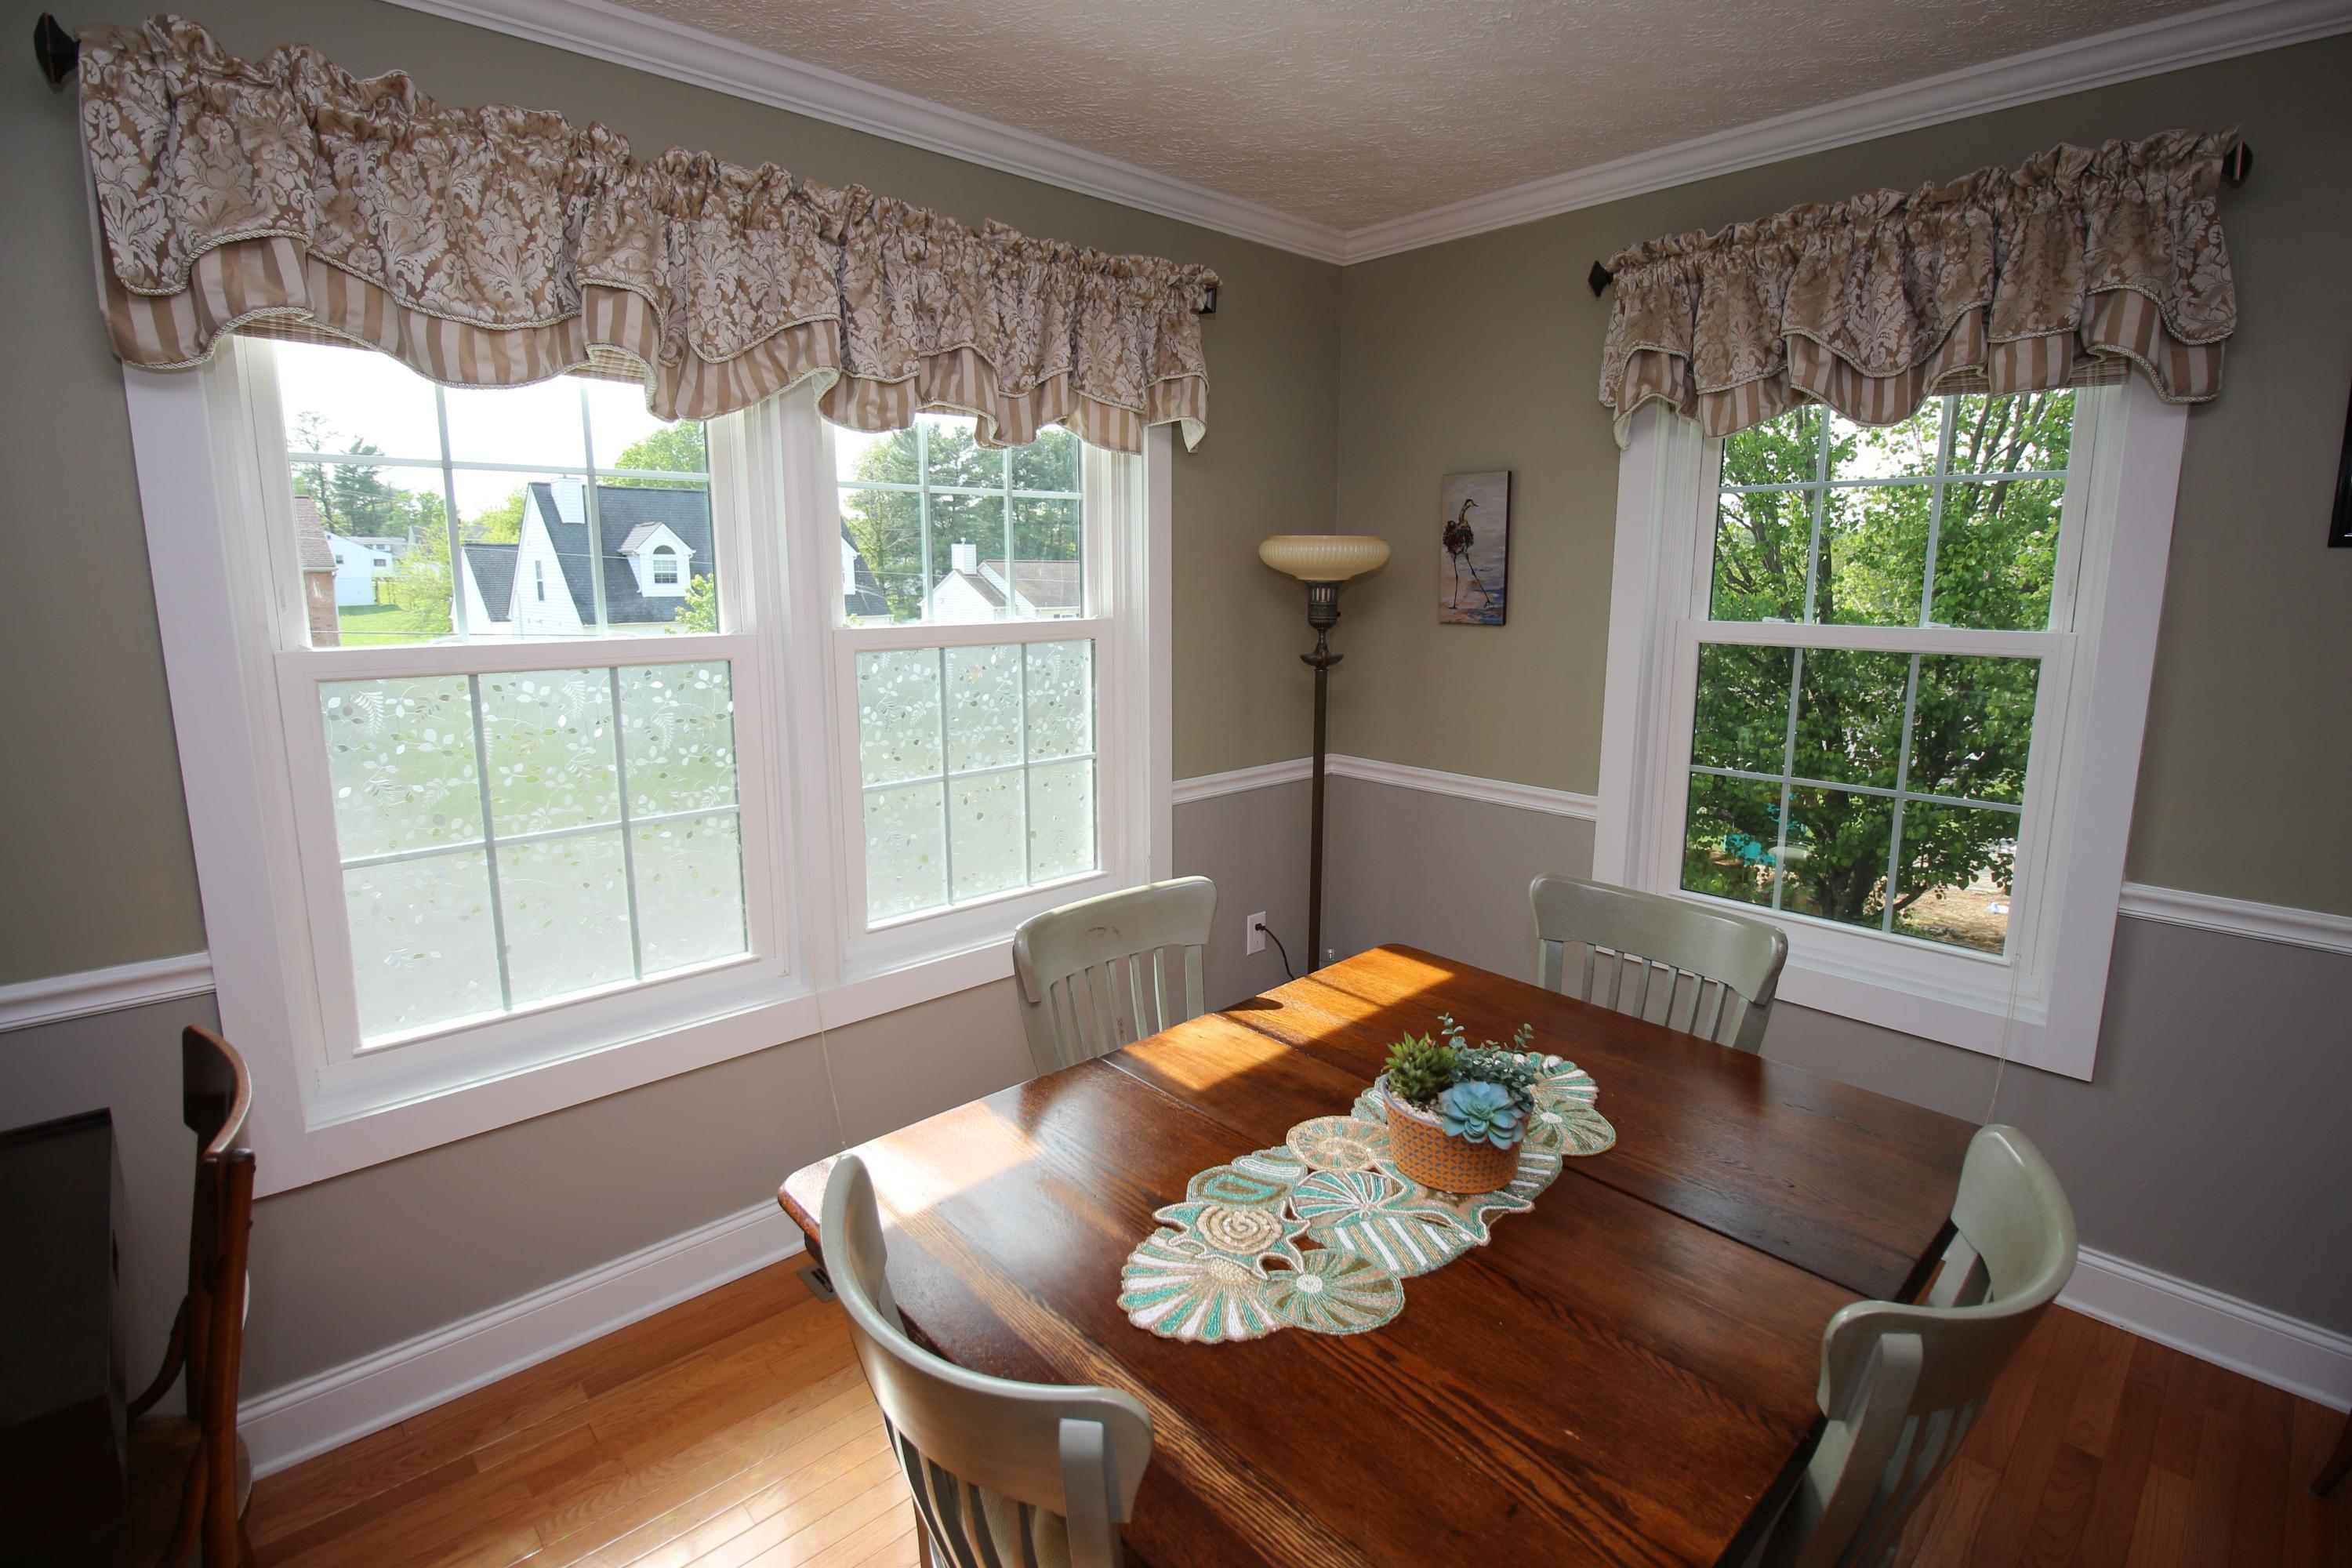 Additional photo for property listing at 270 Robert St Christiansburg, Virginia 24073 United States